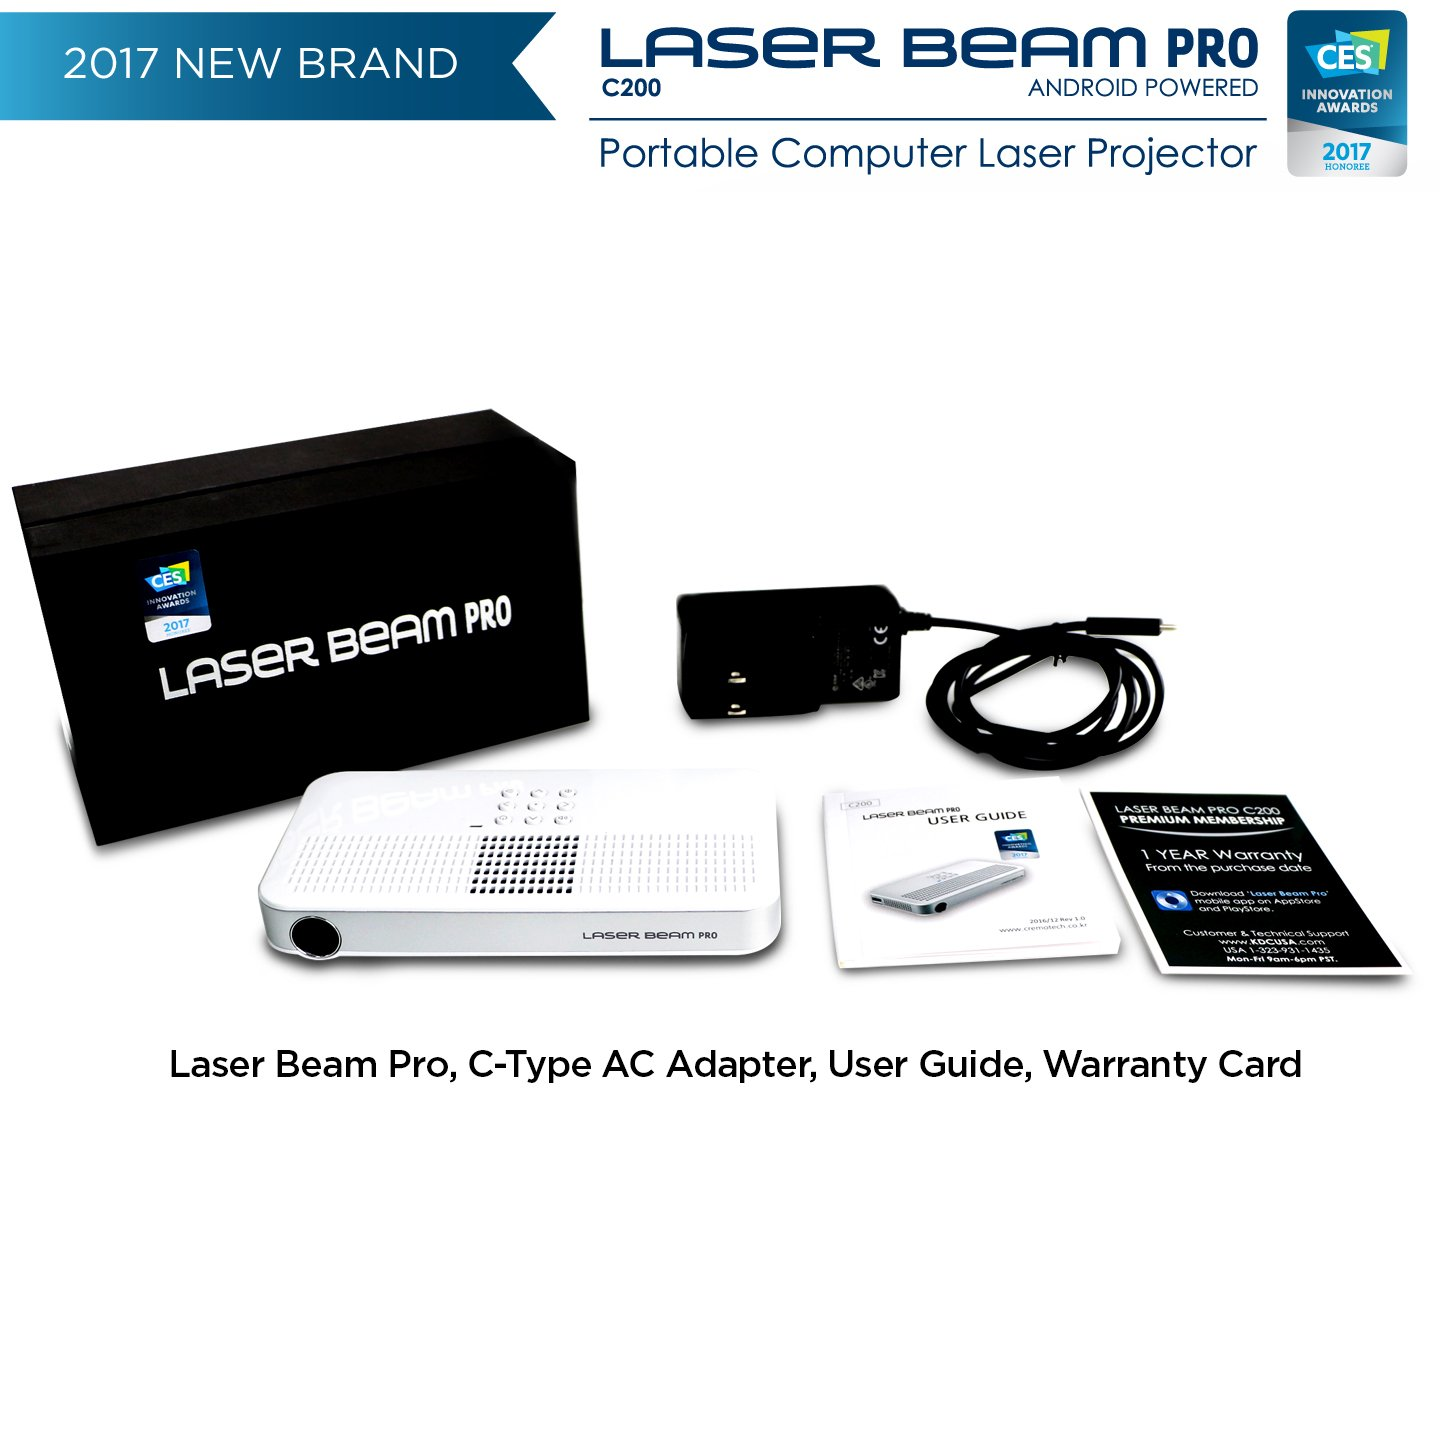 """Laser Beam Pro C200, FDA Assessed Class 1 Laser projector, Focus Fee 20-150"""", HD 768P native resolution, 120 min rechargeable battery, compatible w/ HDMI support devices, built-in Internet, YouTube by Laser Beam Pro (Image #5)"""